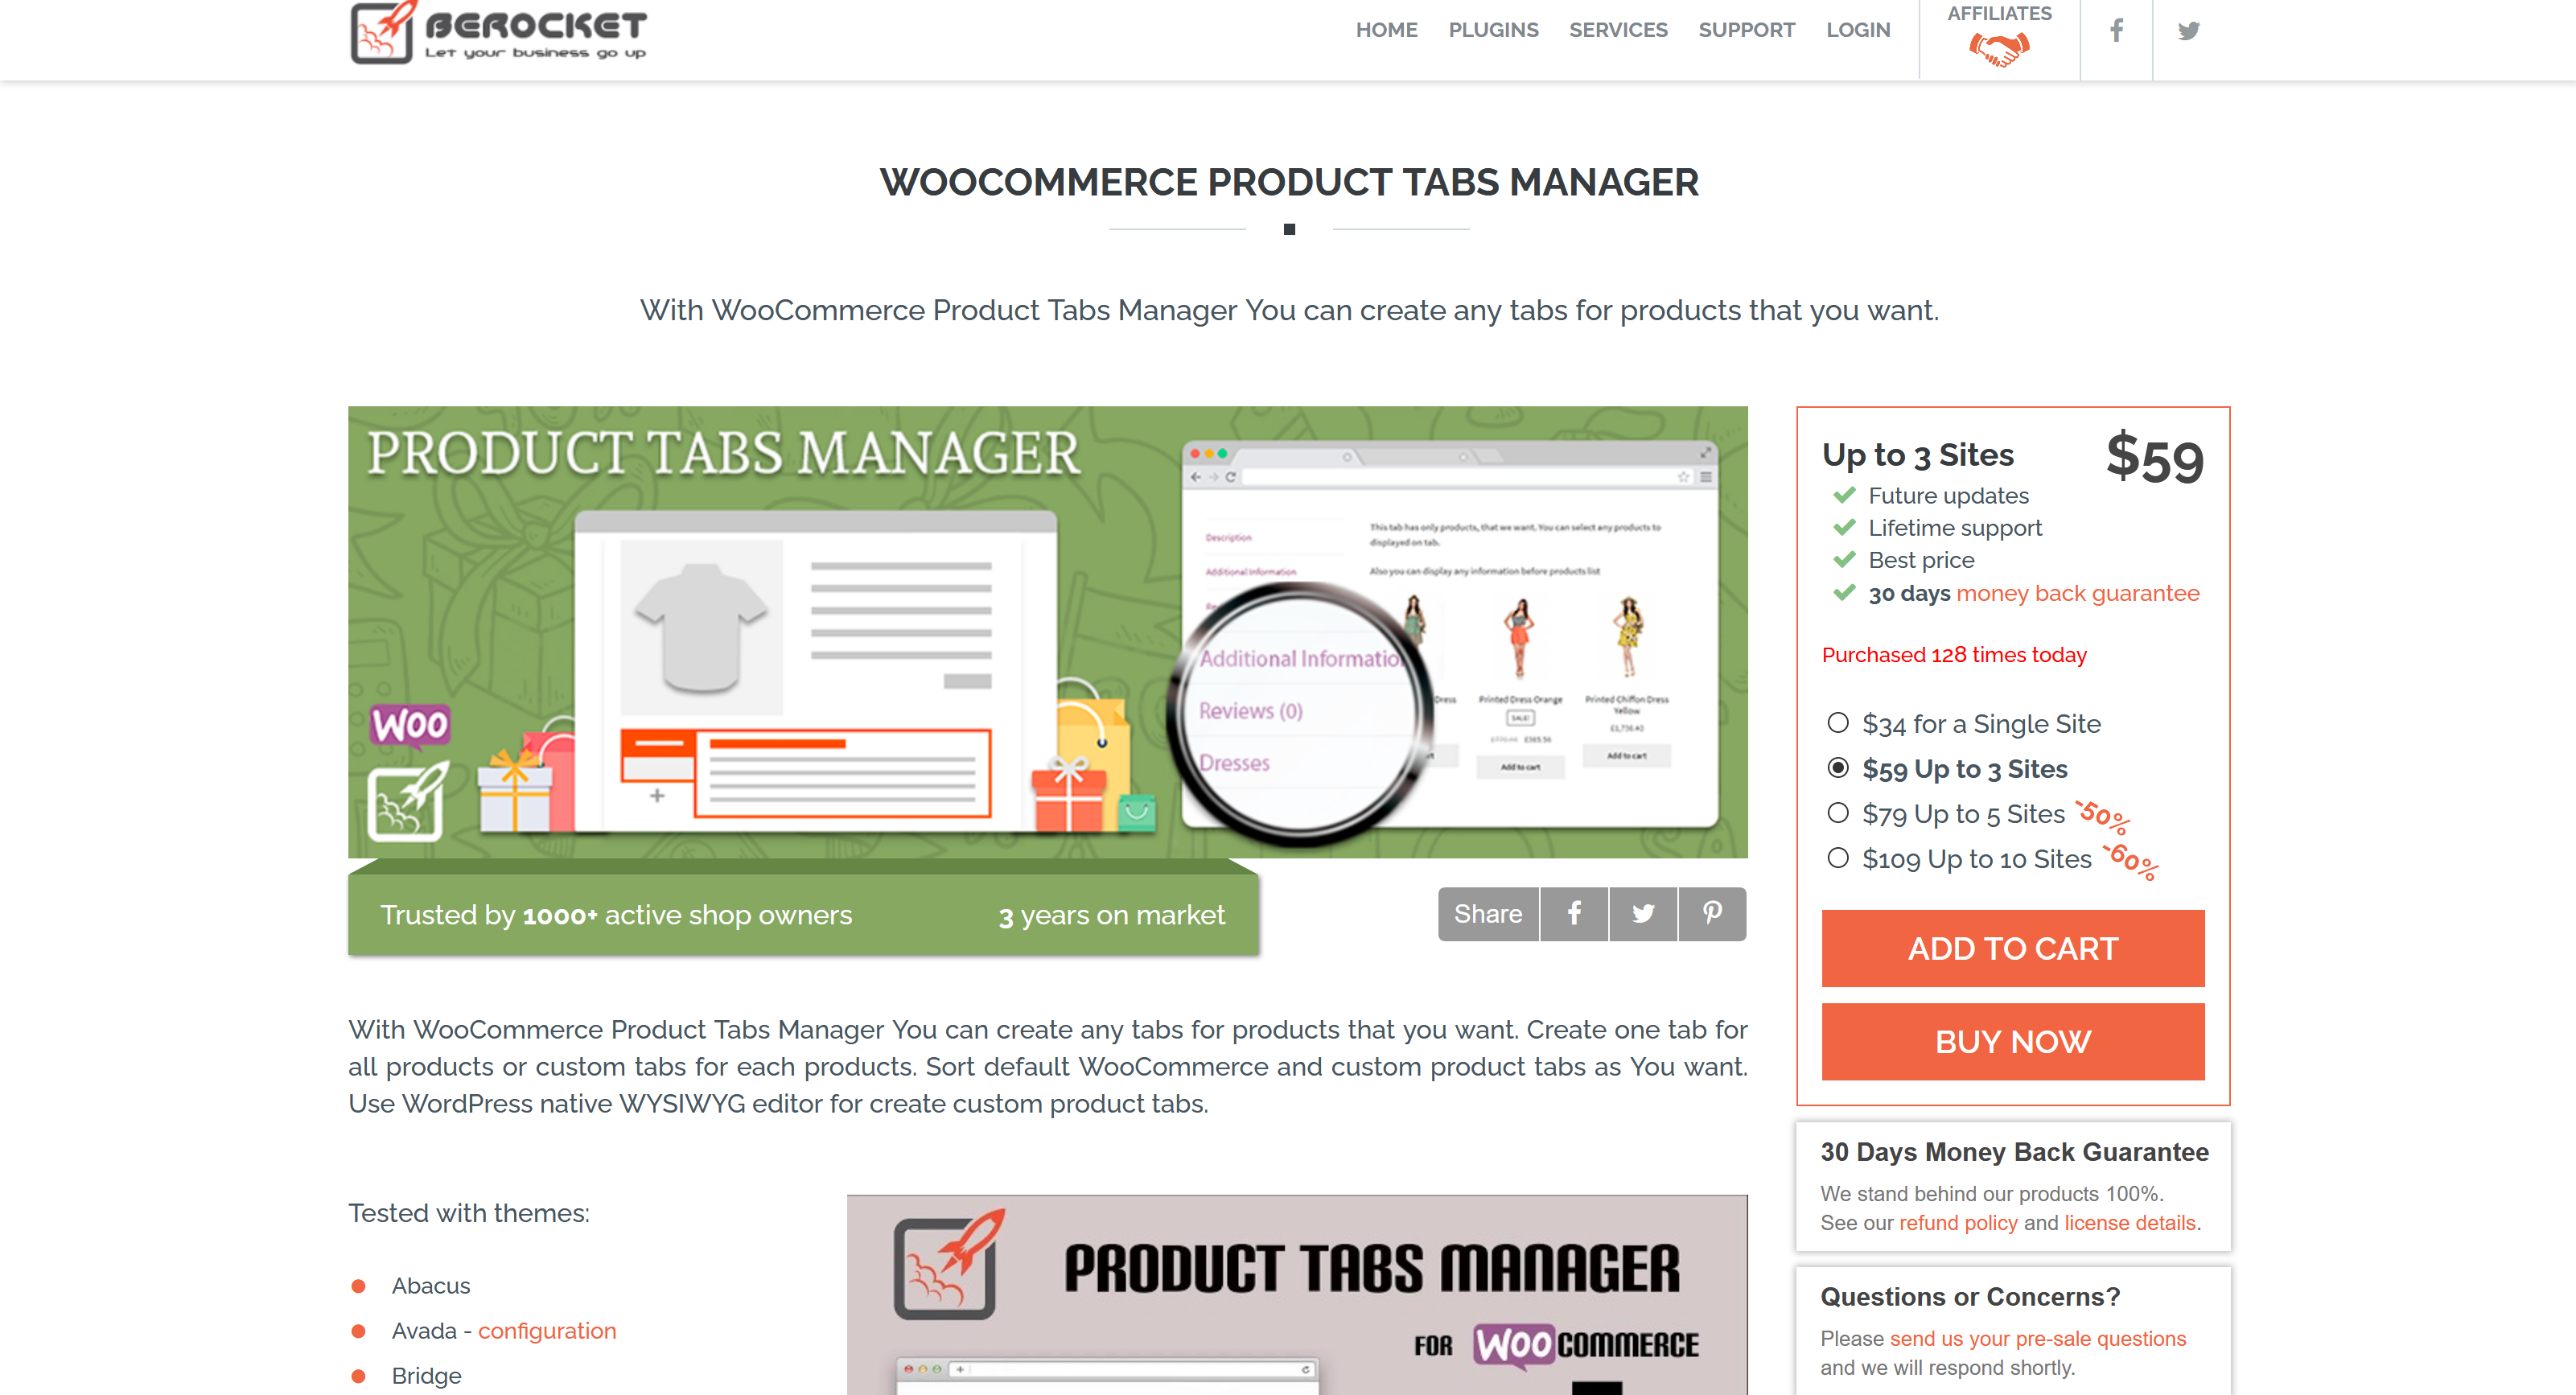 WooCommerce Product Tabs Manager By BeRocket 3.0.2.1